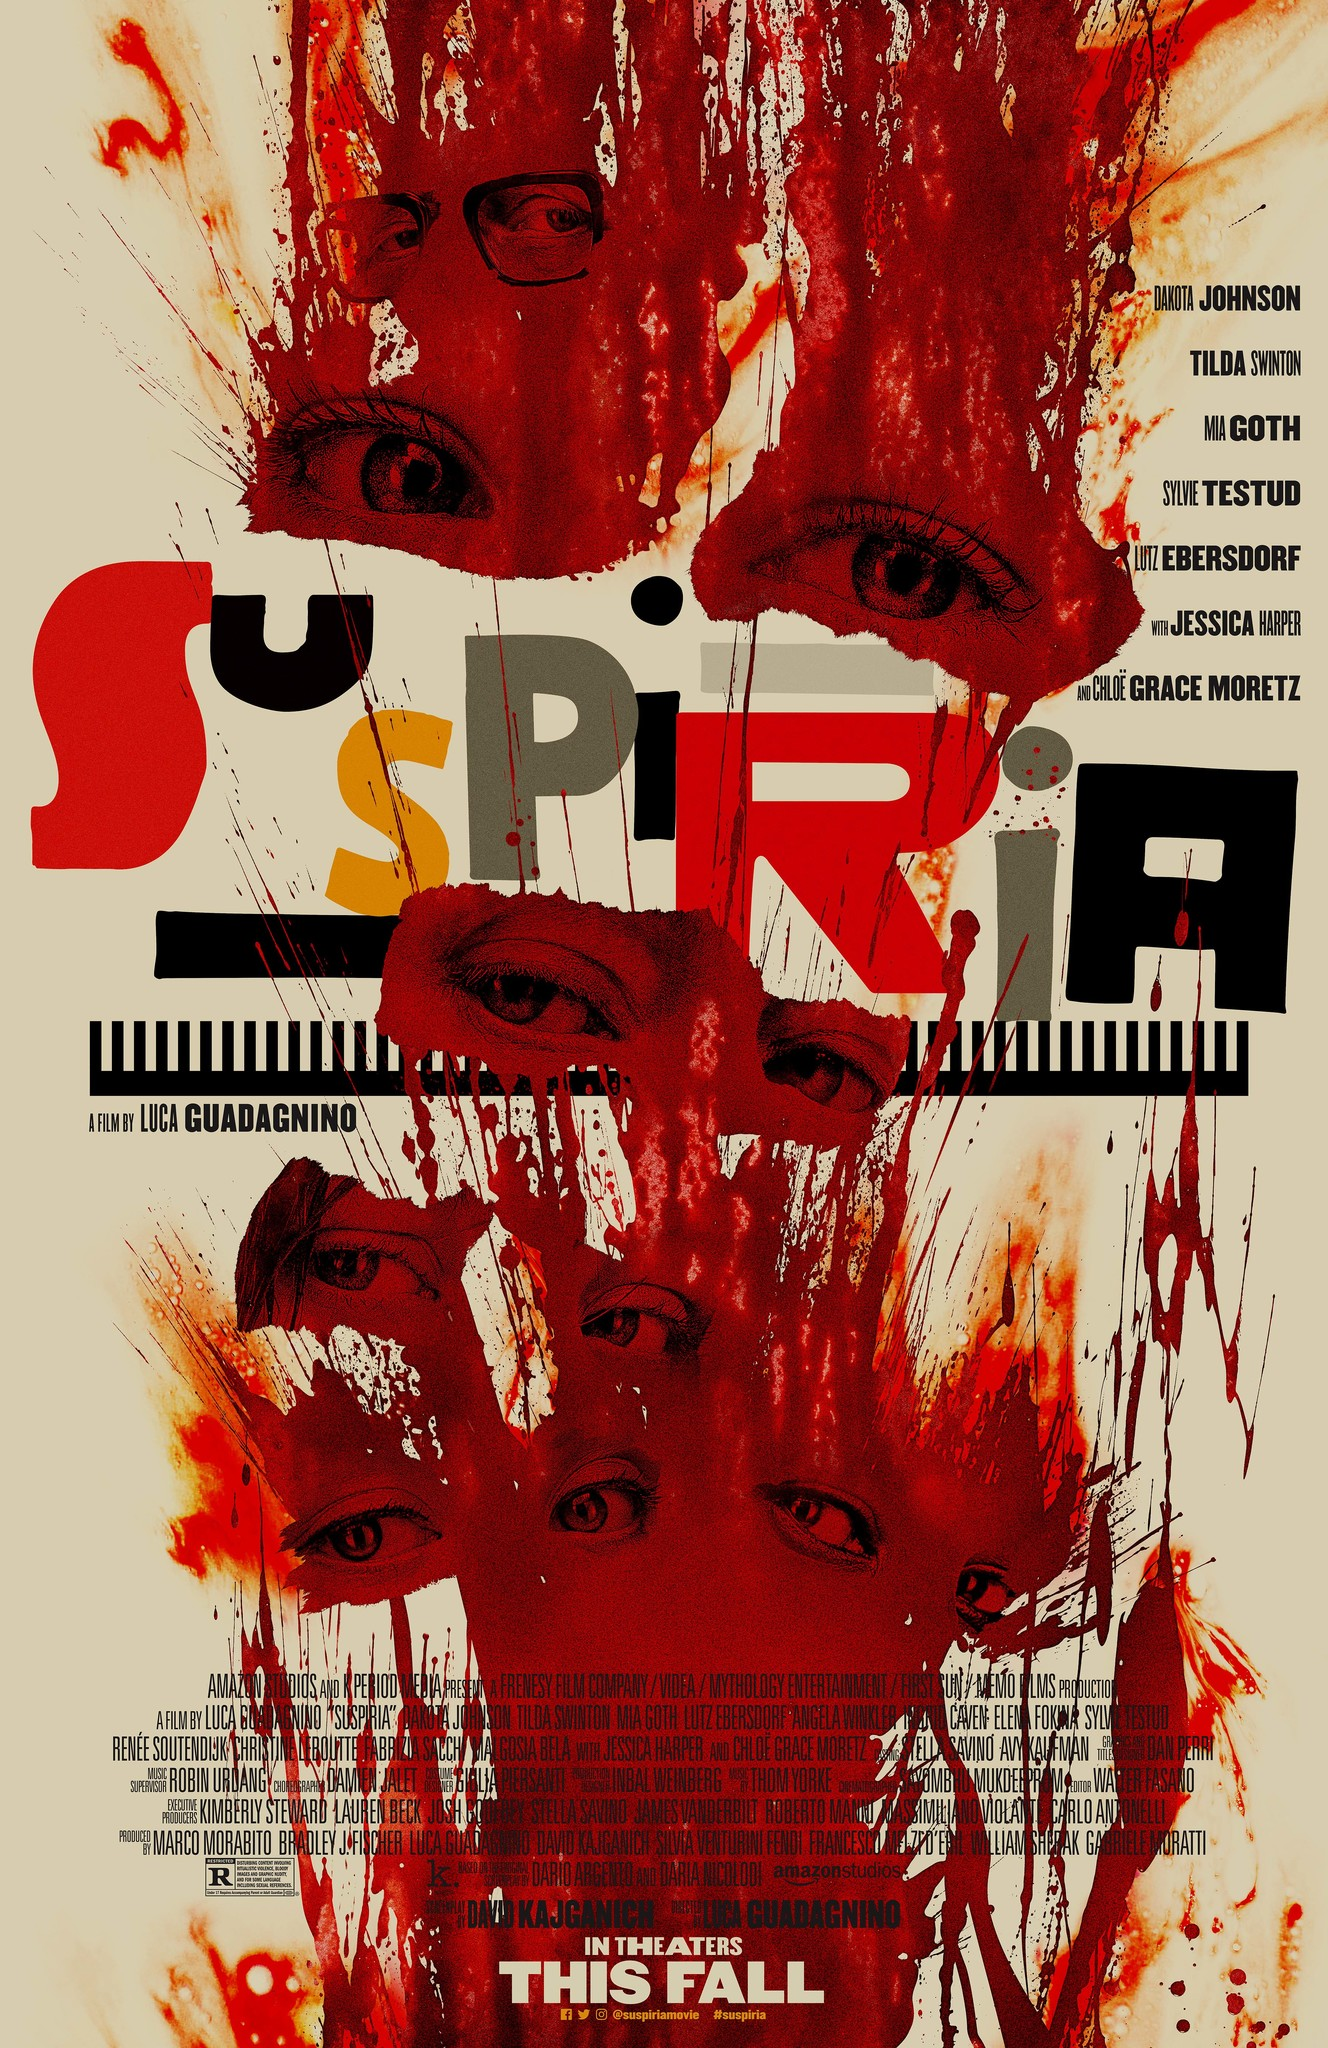 Othersode #21: Swilda Tinton / Suspiria - Join the #BookSquad — er, #BookCoven — for a not-so-scary look at the new Suspiria, directed by Luca Guadagnino. We talk about what worked and what didn't work (but mostly what didn't work) in this re-imagining of the 1977 film. Is the dancing good? Why is Tilda Swinton playing so many characters? And most importantly, what would Suspiria sound like as a Rihanna song? We answer all this and more, plus we hear some listener feedback on Castle Rock! Read along with us for our next #bookpisode on Celeste Ng's Little Fires Everywhere, which drops on December 3rd.